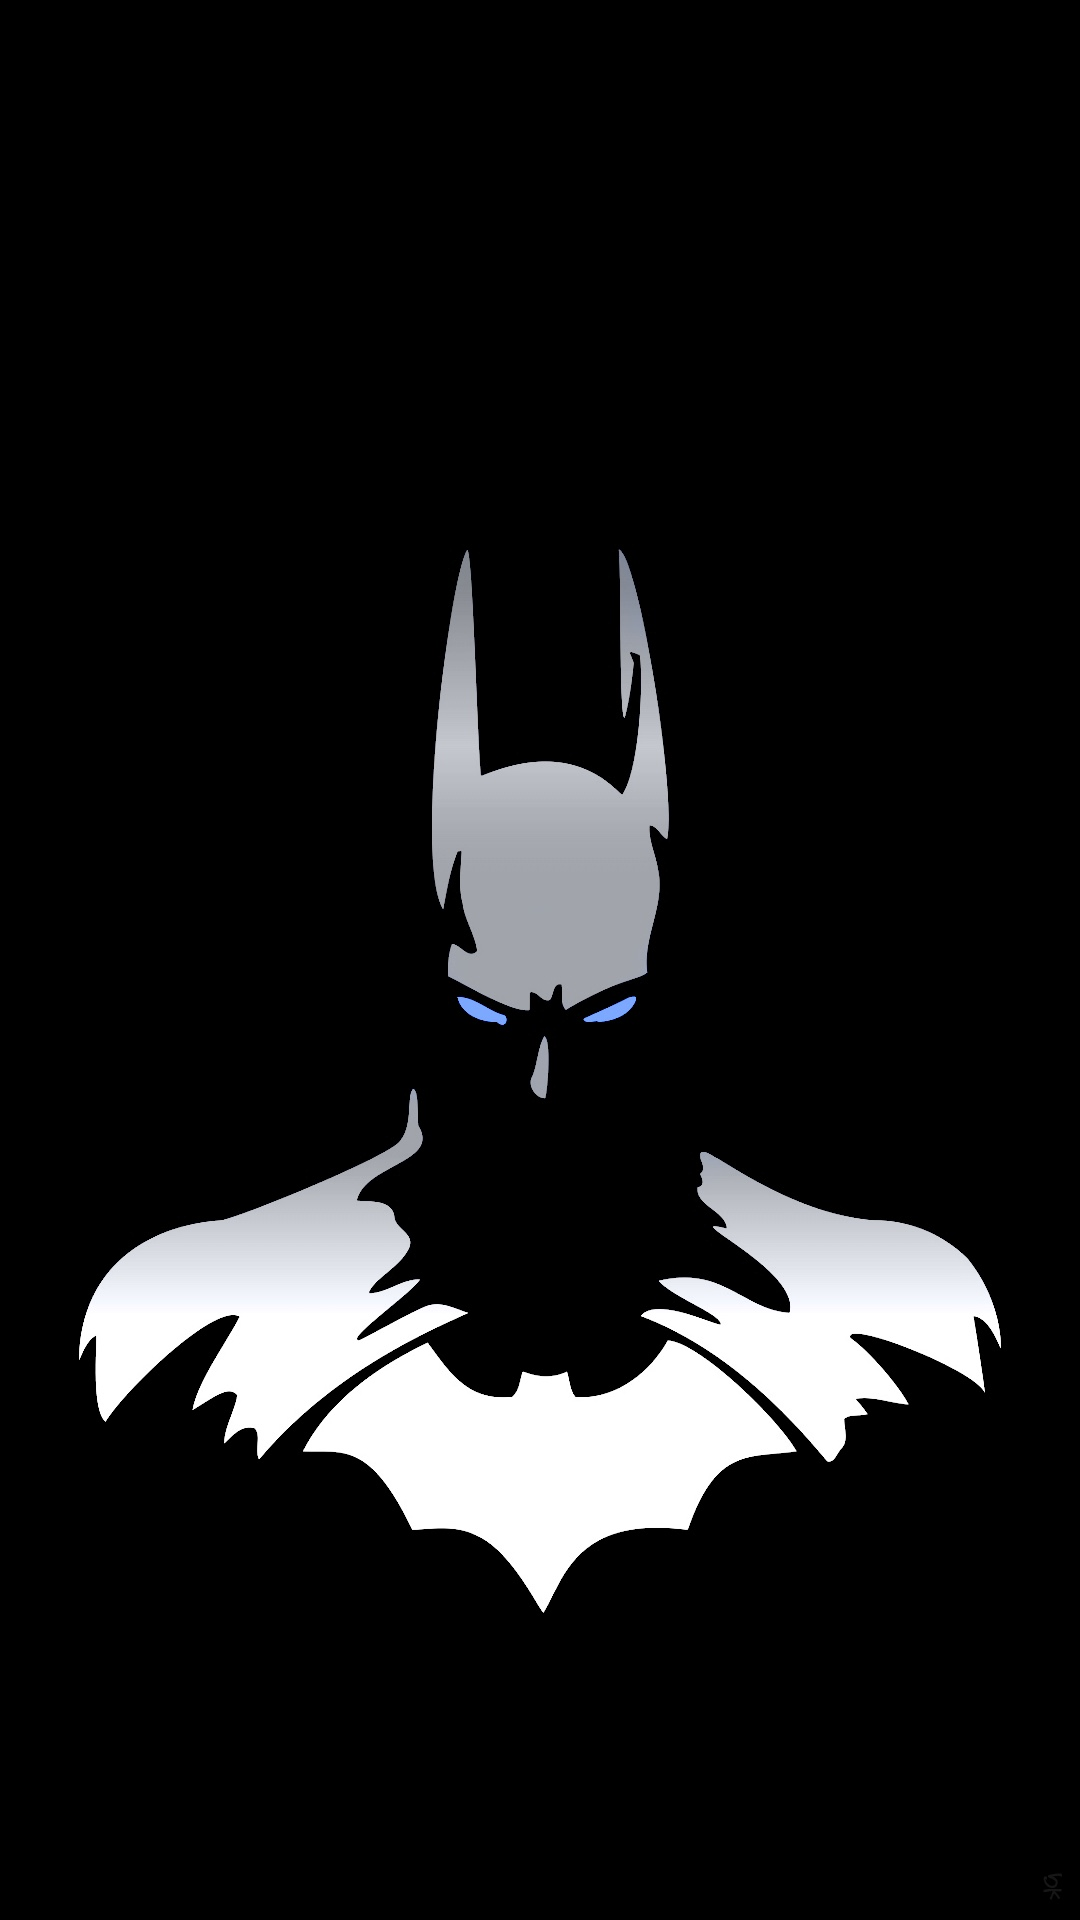 Best Wallpaper Macbook Batman - a703a4c77ff92a3e14faa2541da070e2  2018_451639.png